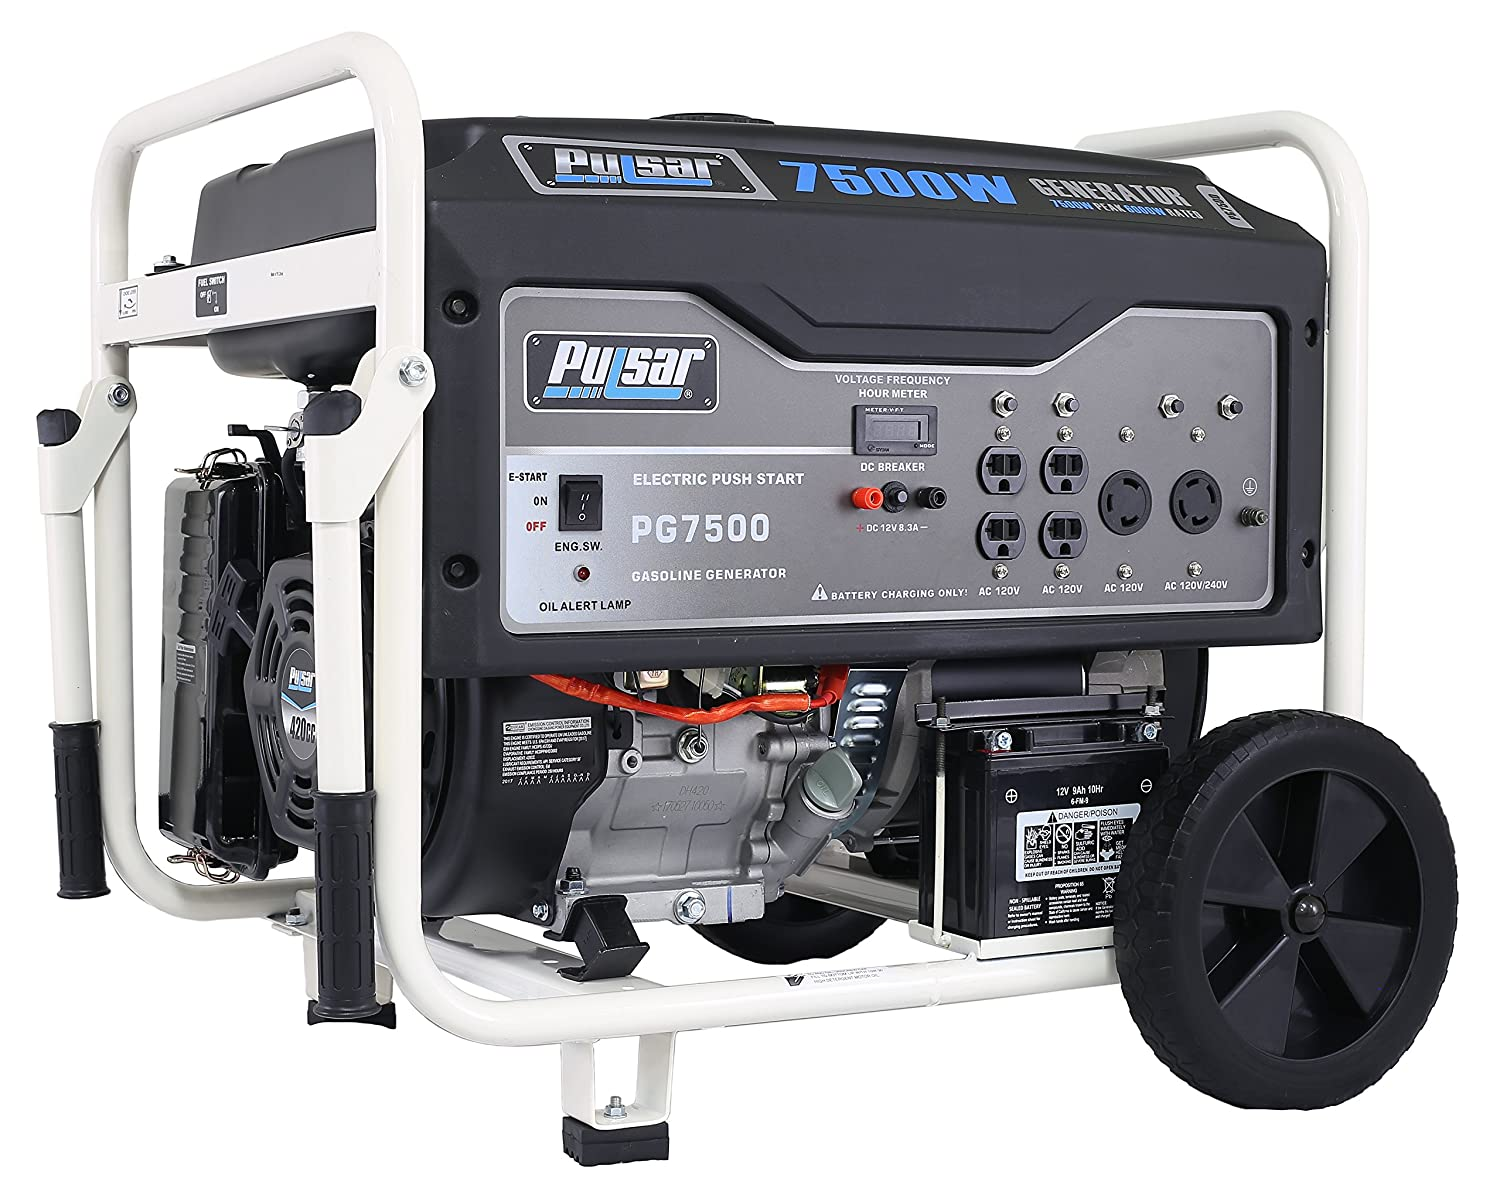 Pulsar Pg7500 7500w Peak 6000w Rated Portable Gas Generator Diagram Simple The Ac Allow Powered With Electric Start Power Generators Garden Outdoor